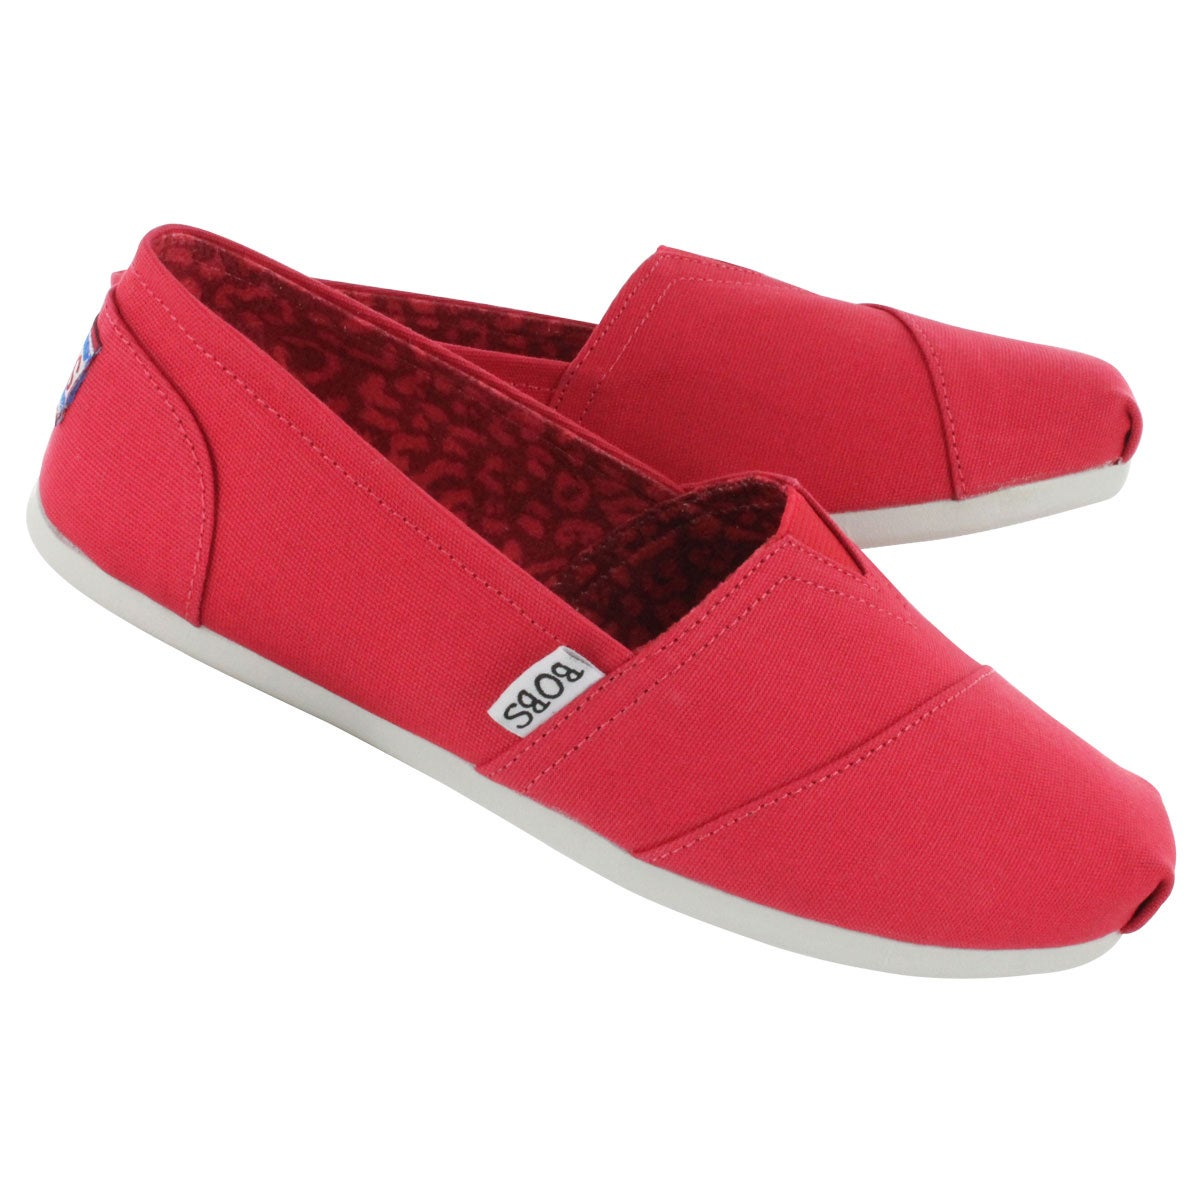 Lds Plush Peace& Love red canvas slip on